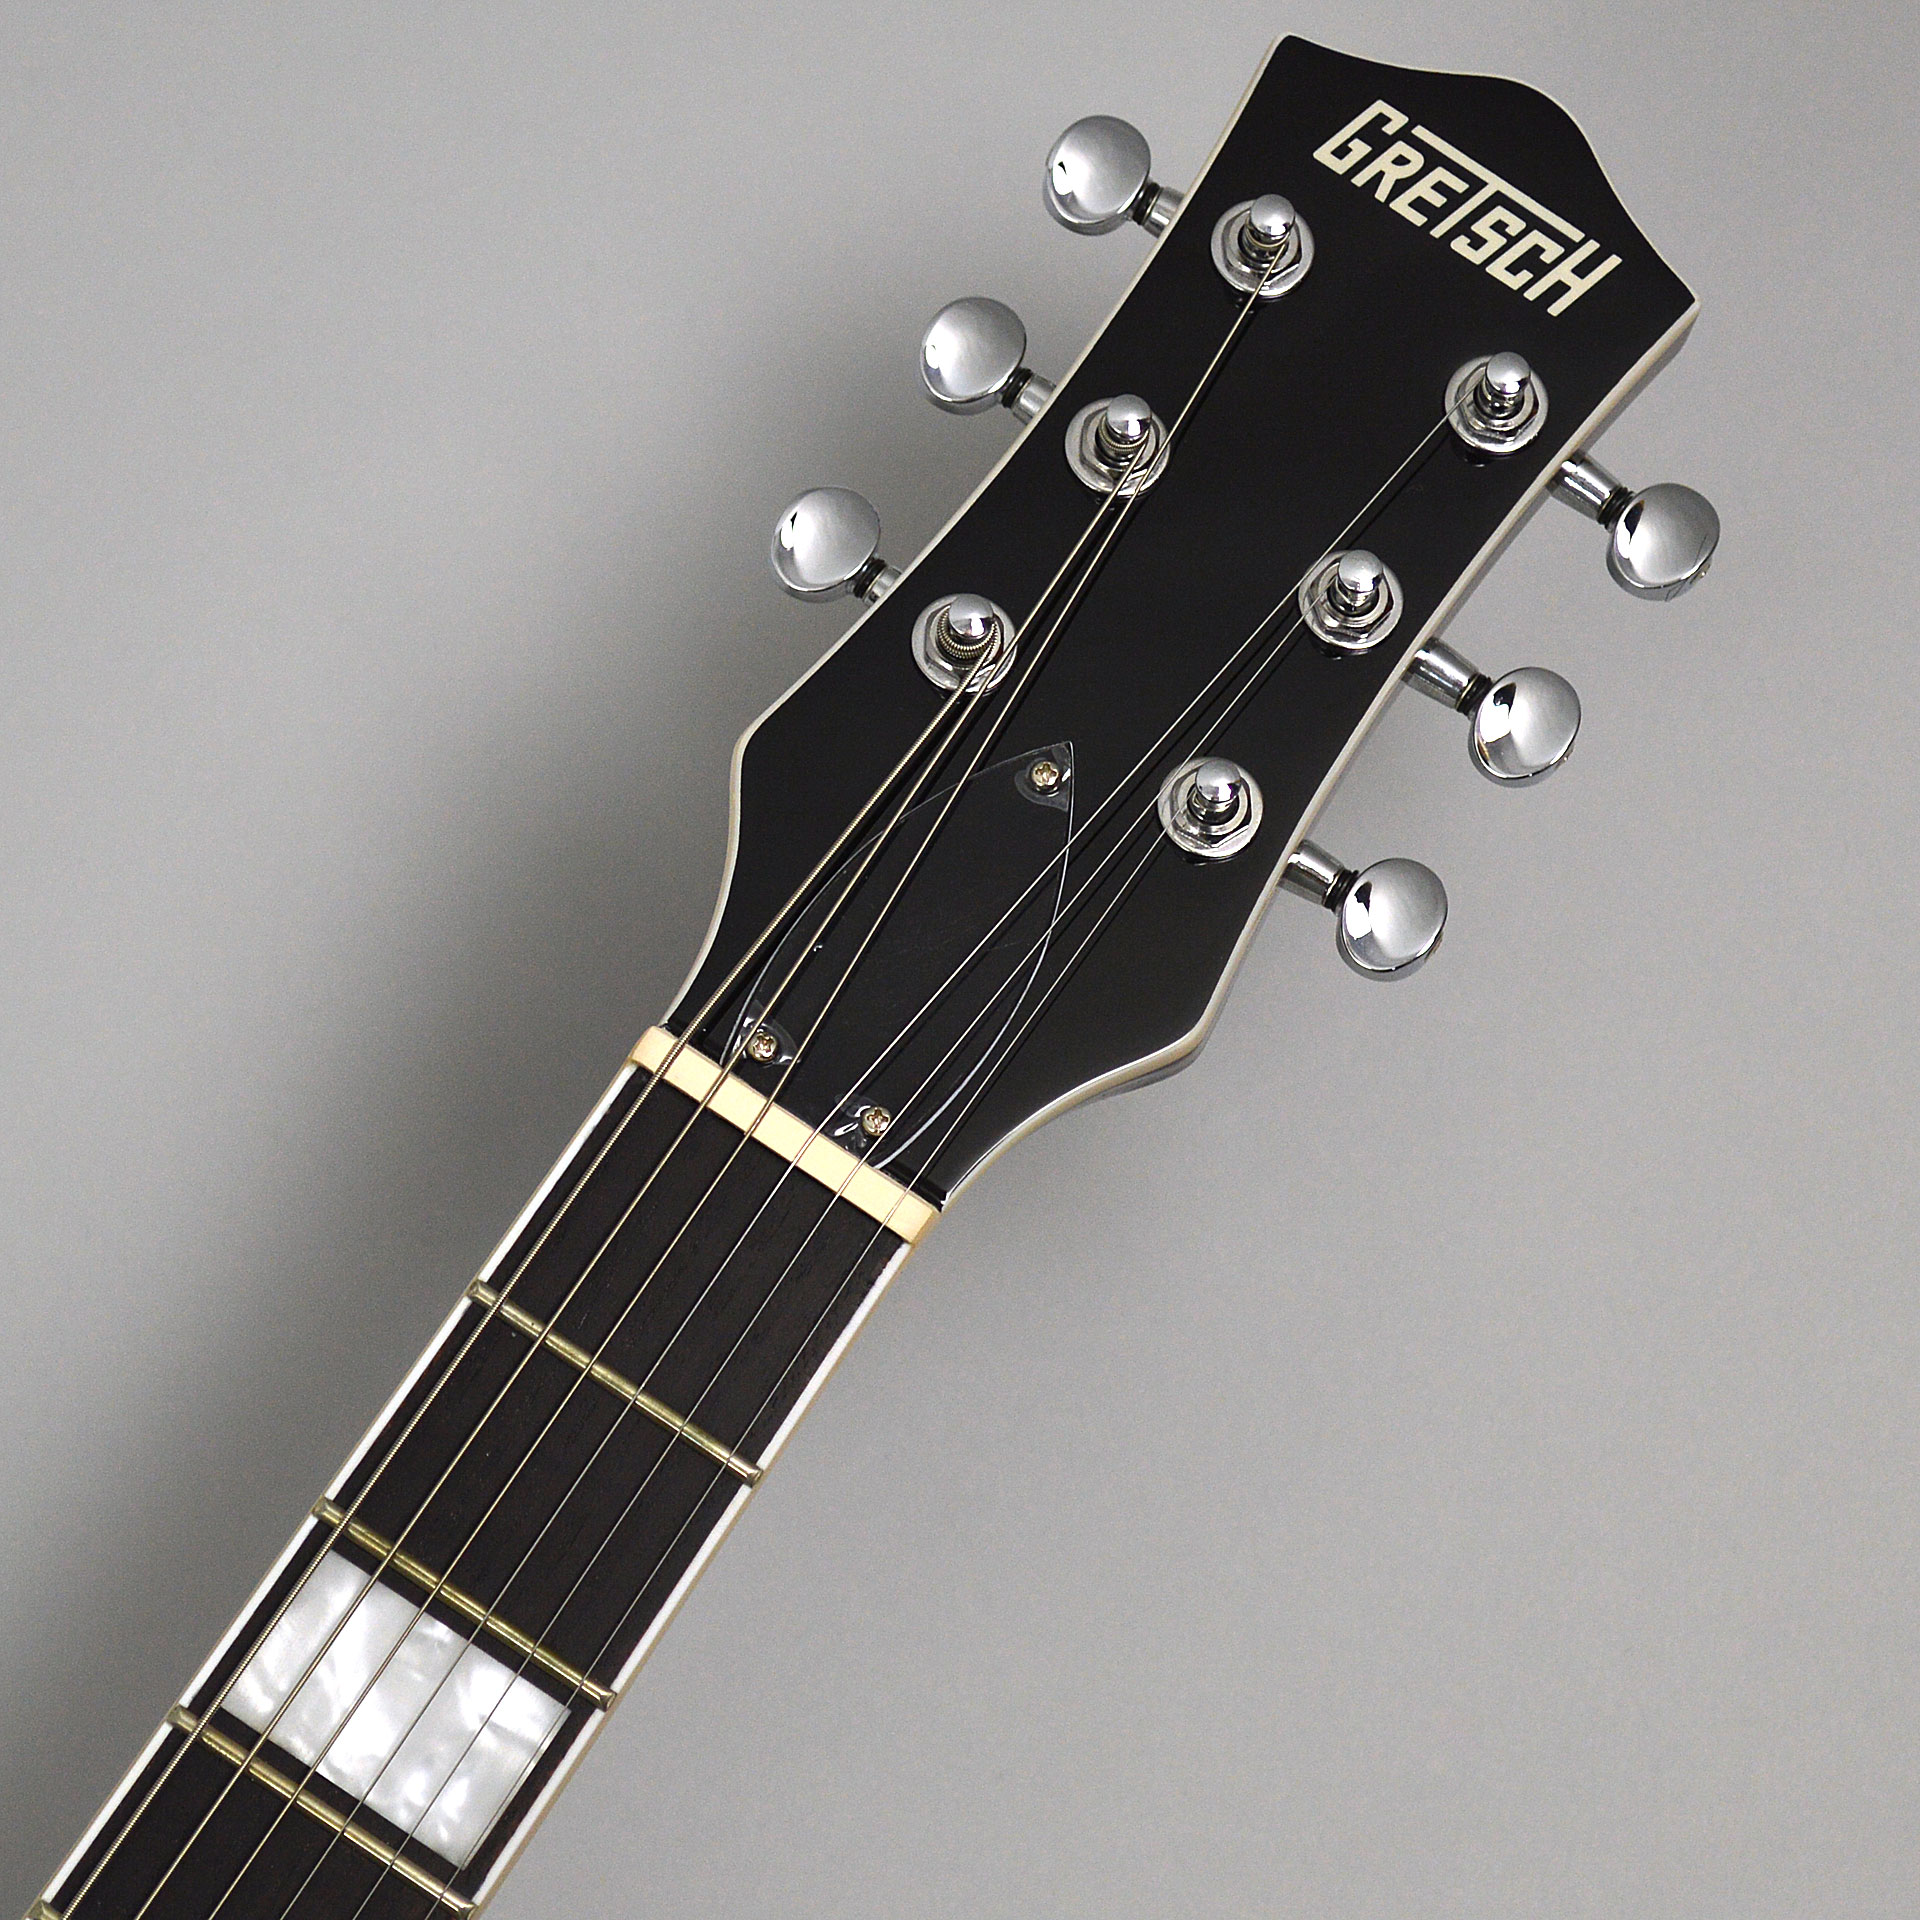 G5220 Electromatic Jet BT Single-Cut with V-Stoptail Casino Goldのヘッド画像